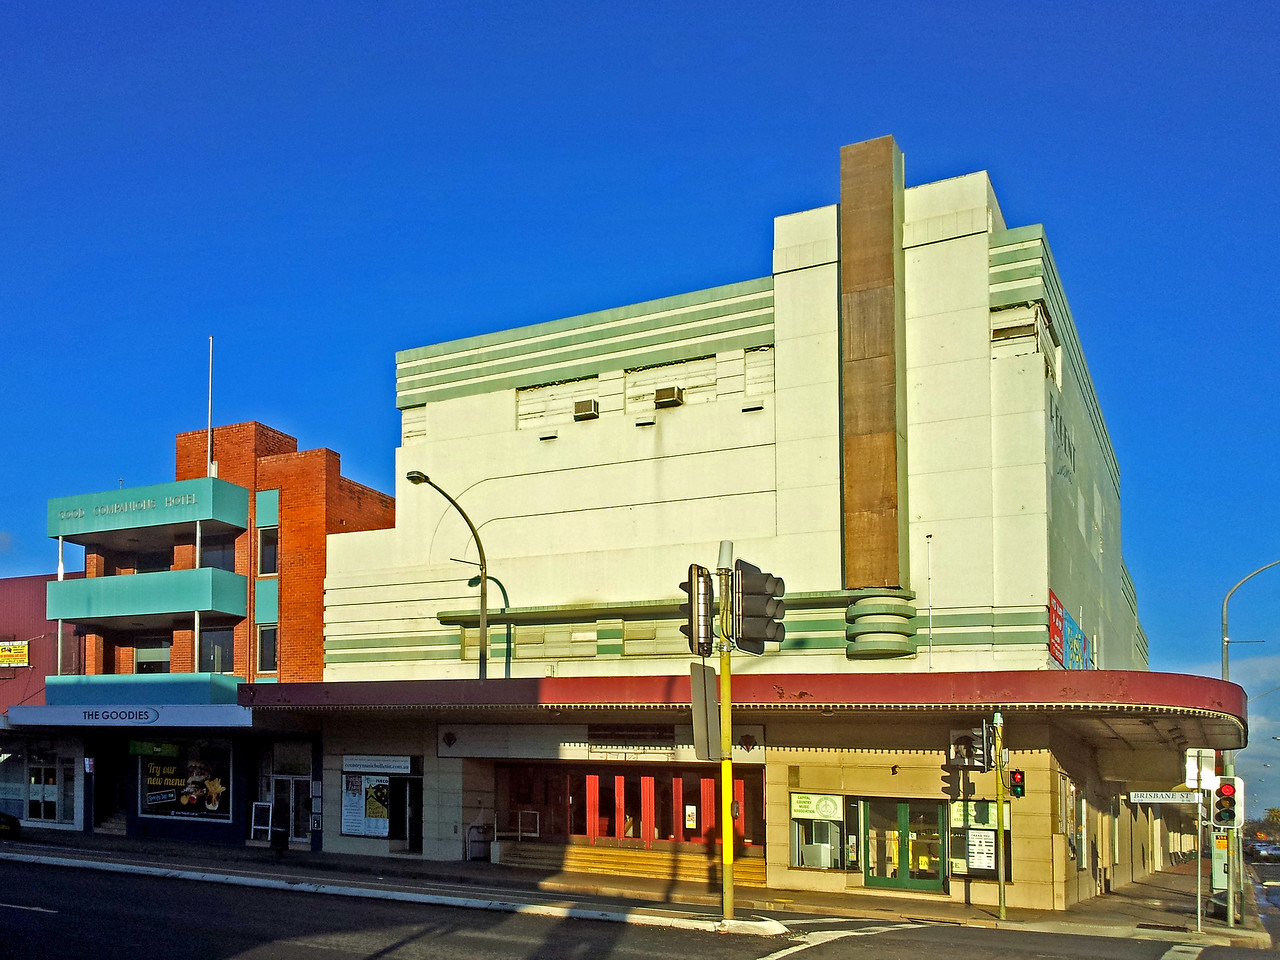 26 July, 2014: Regent Theatre and Good Companions Hotel, Tamworth, New South Wales.